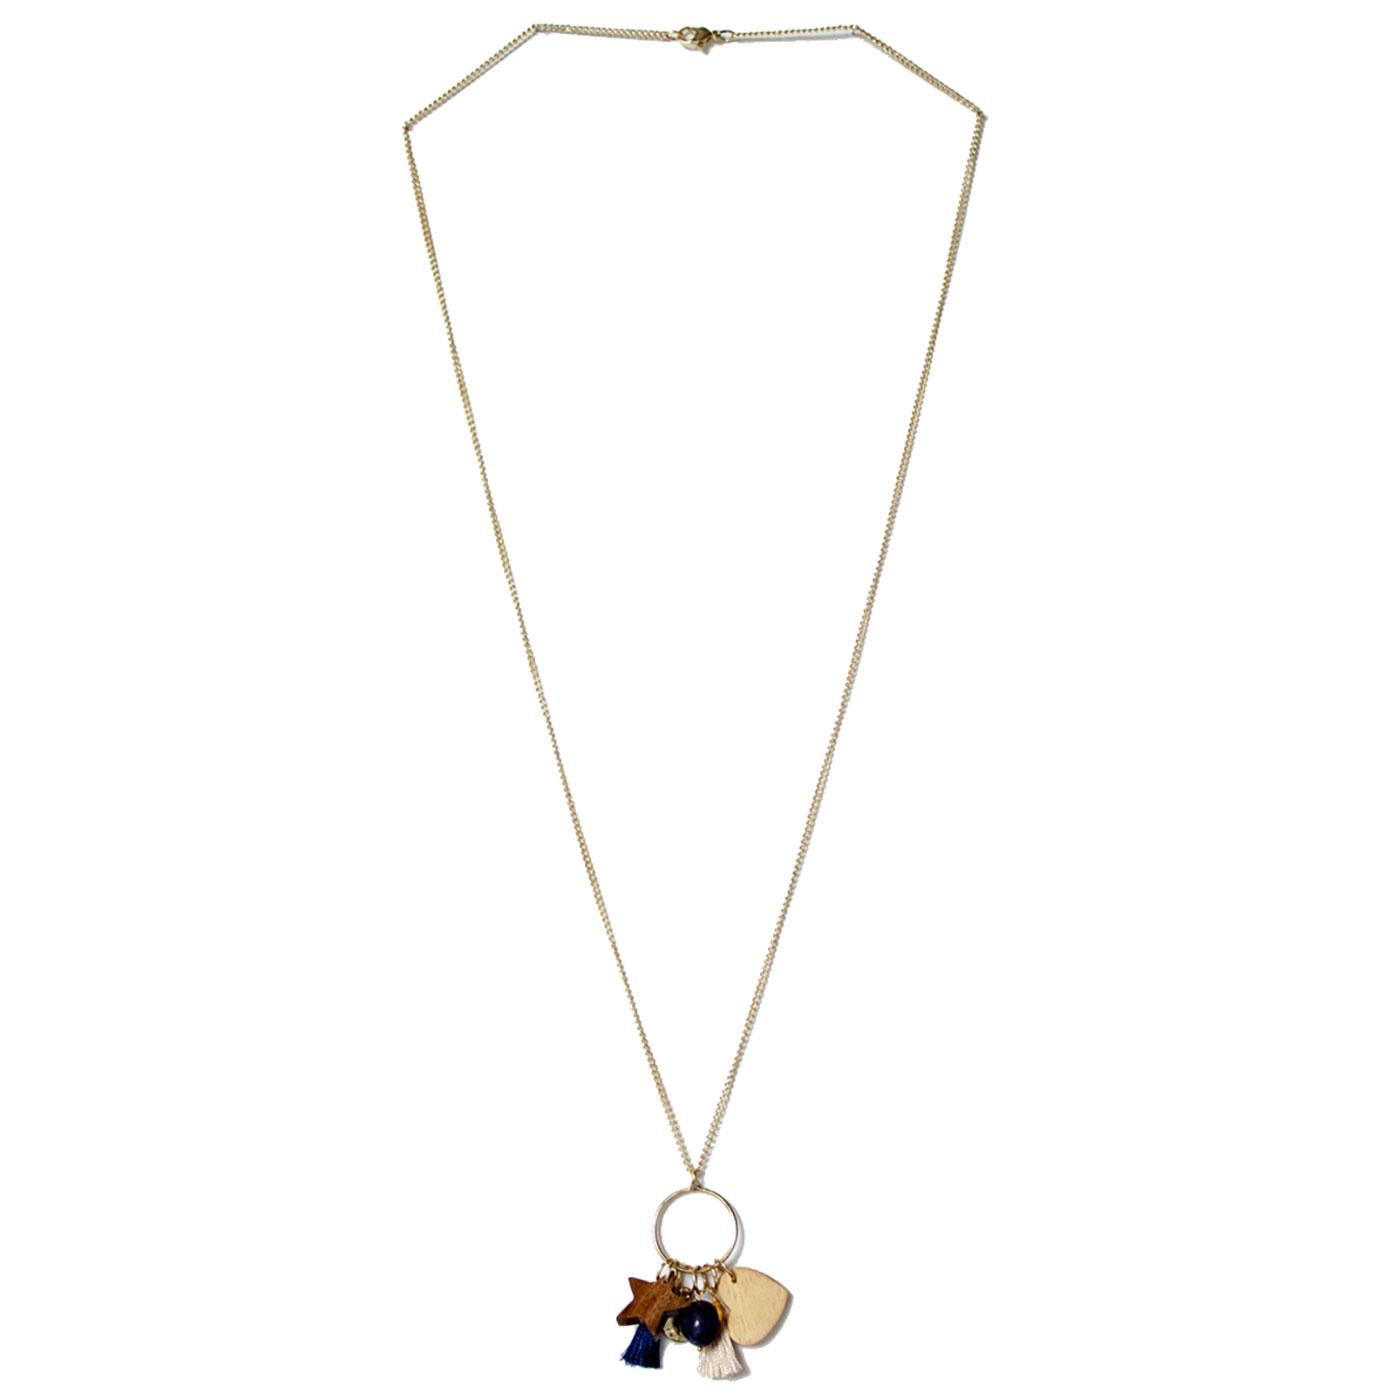 Charm NOMADS Retro Wooden Charm Necklace